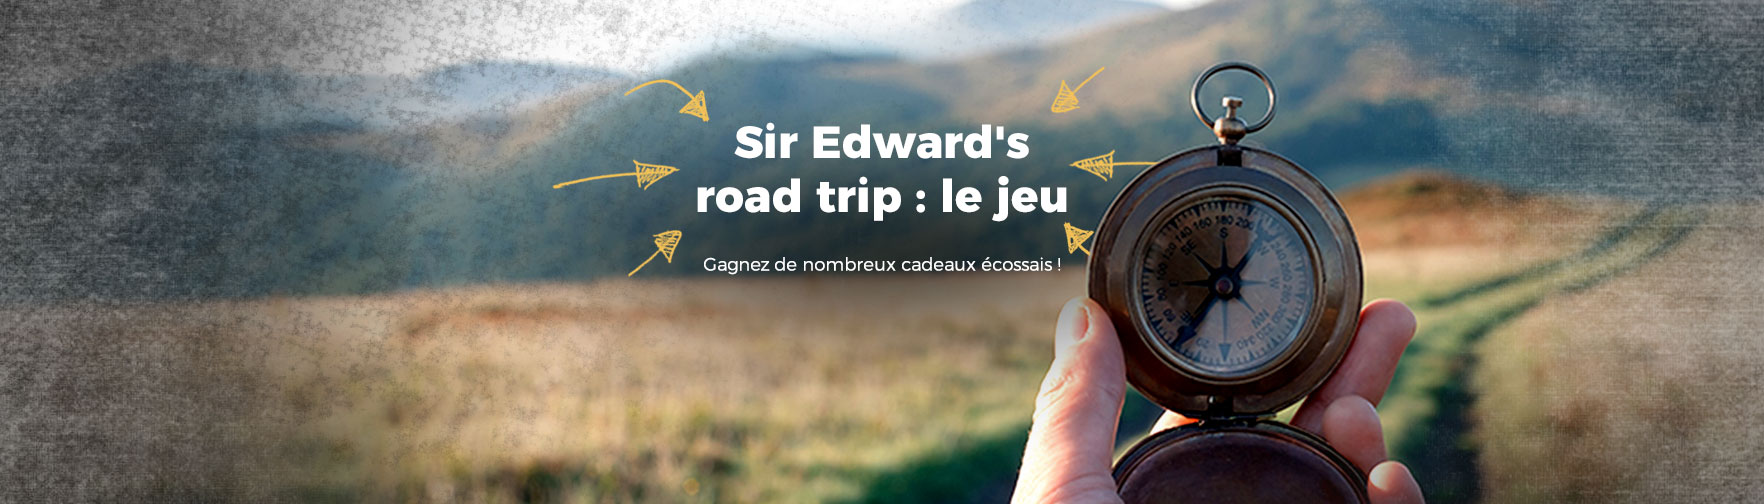 Jeu de piste Sir Edward's